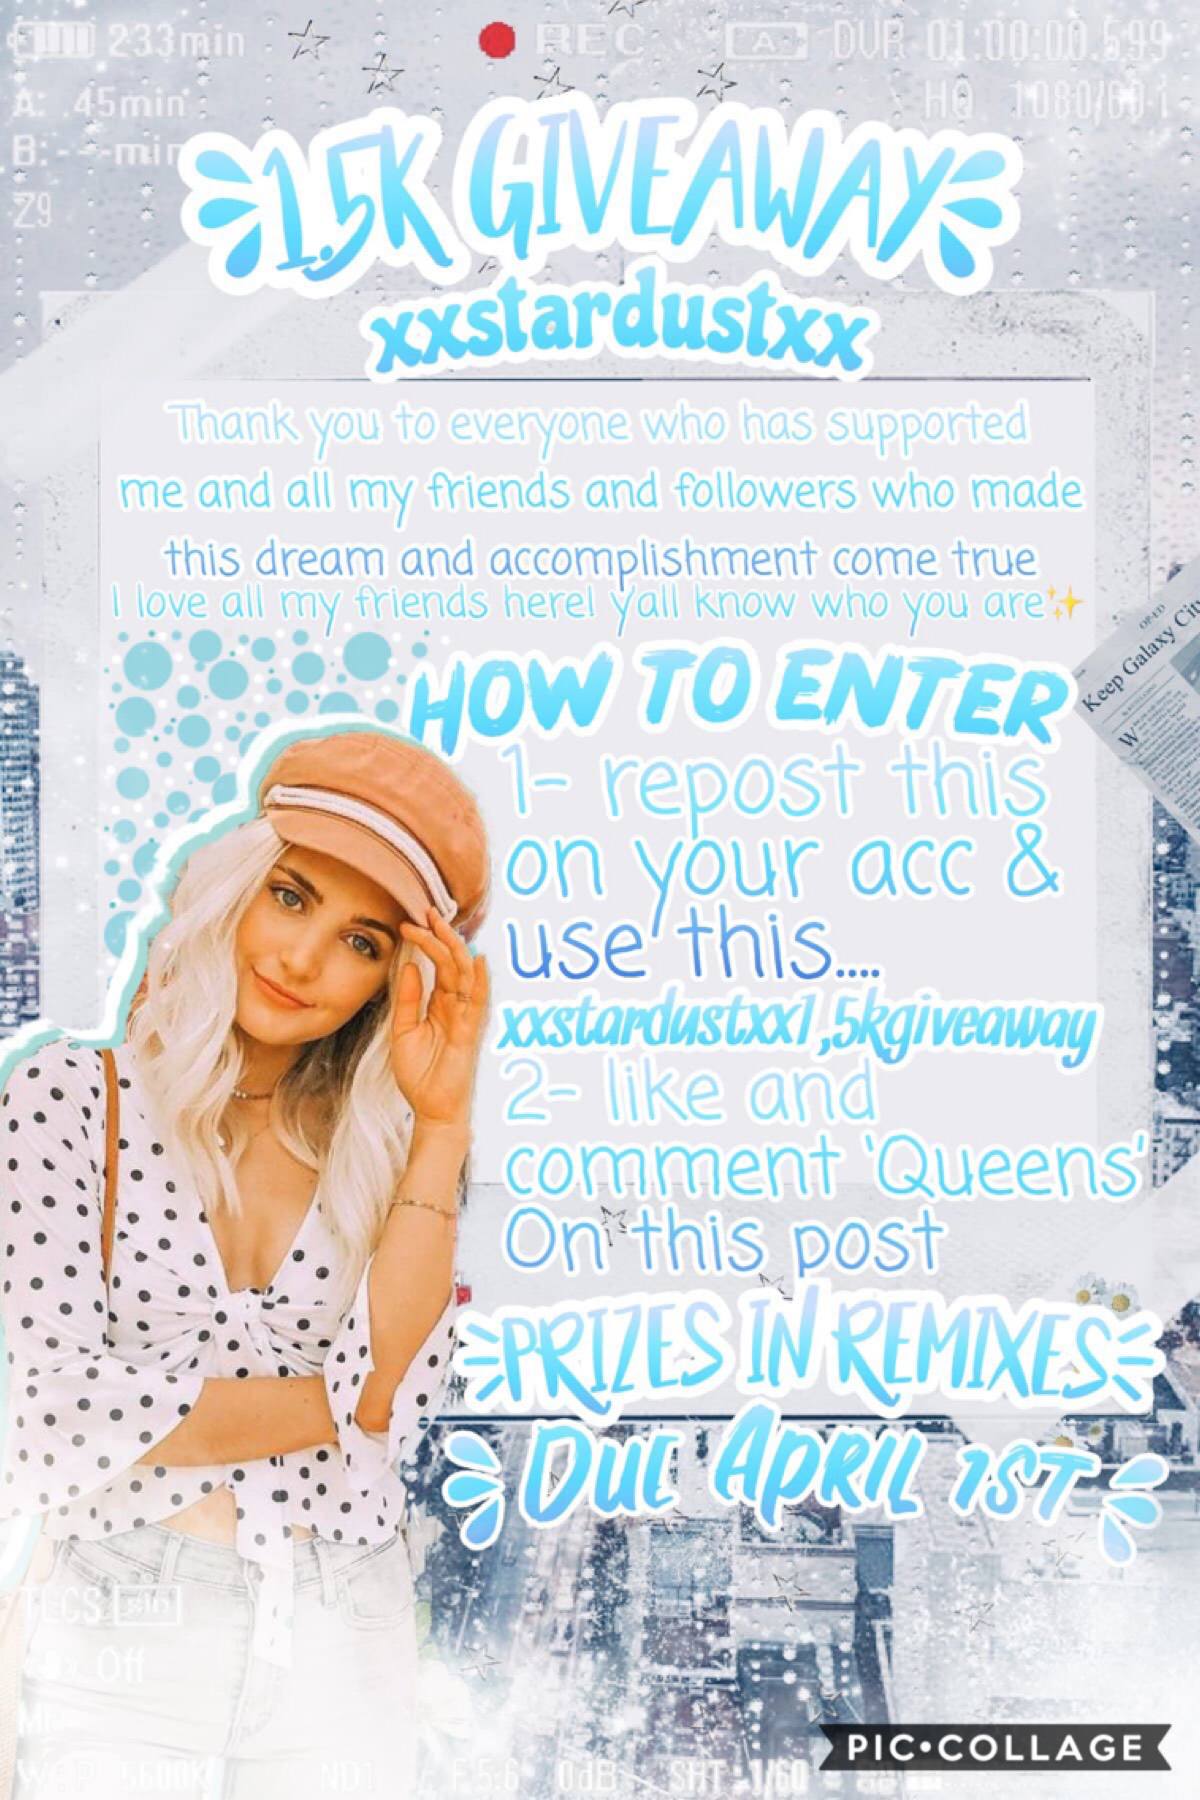 xXStarDustXx1.5kgiveaway! 💫 💙 🙌🏻 The puppies are doing pretty well, their nicknames are Leaky Luke and Stubby Dubby. 😂 🐶 🧻 My grandparents gave me their older TV so I can watch movies in my room, I just have to set it up and stuff soon. 🙃 📺 📀